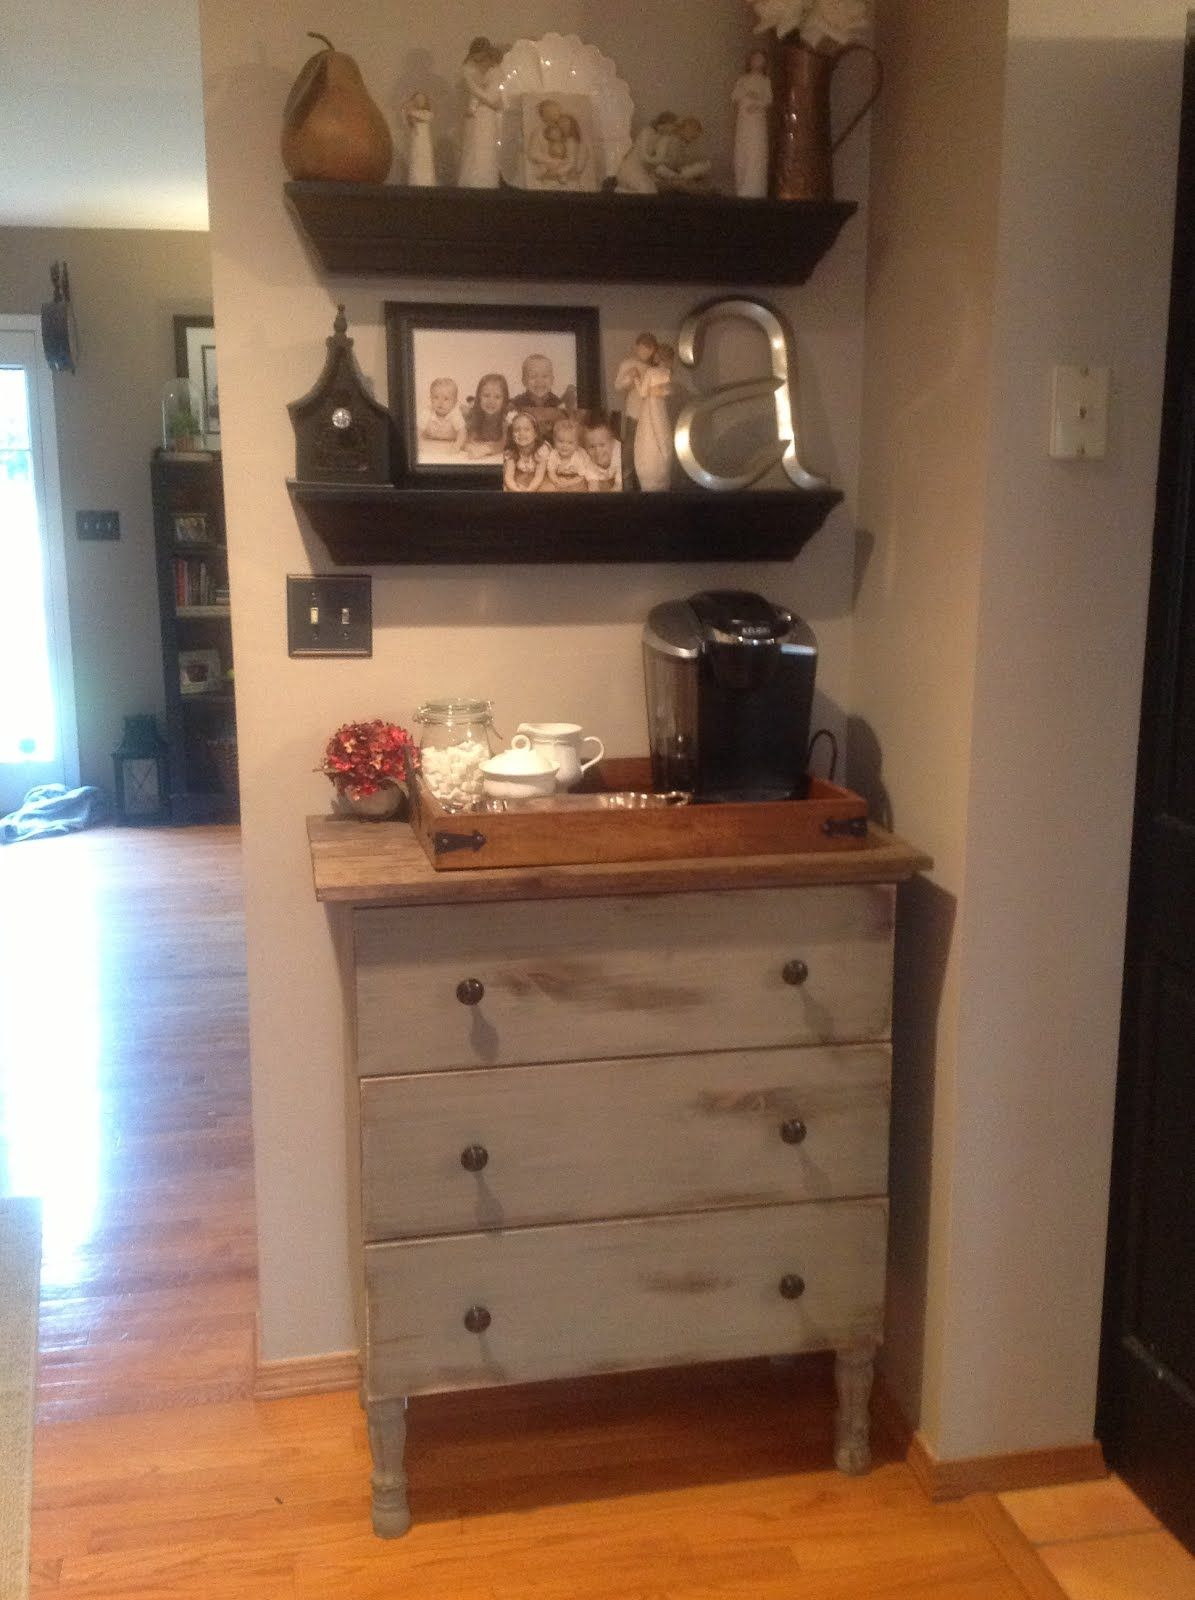 kitchen coffee cart white backsplash pictures does not have to be set up in like bar or